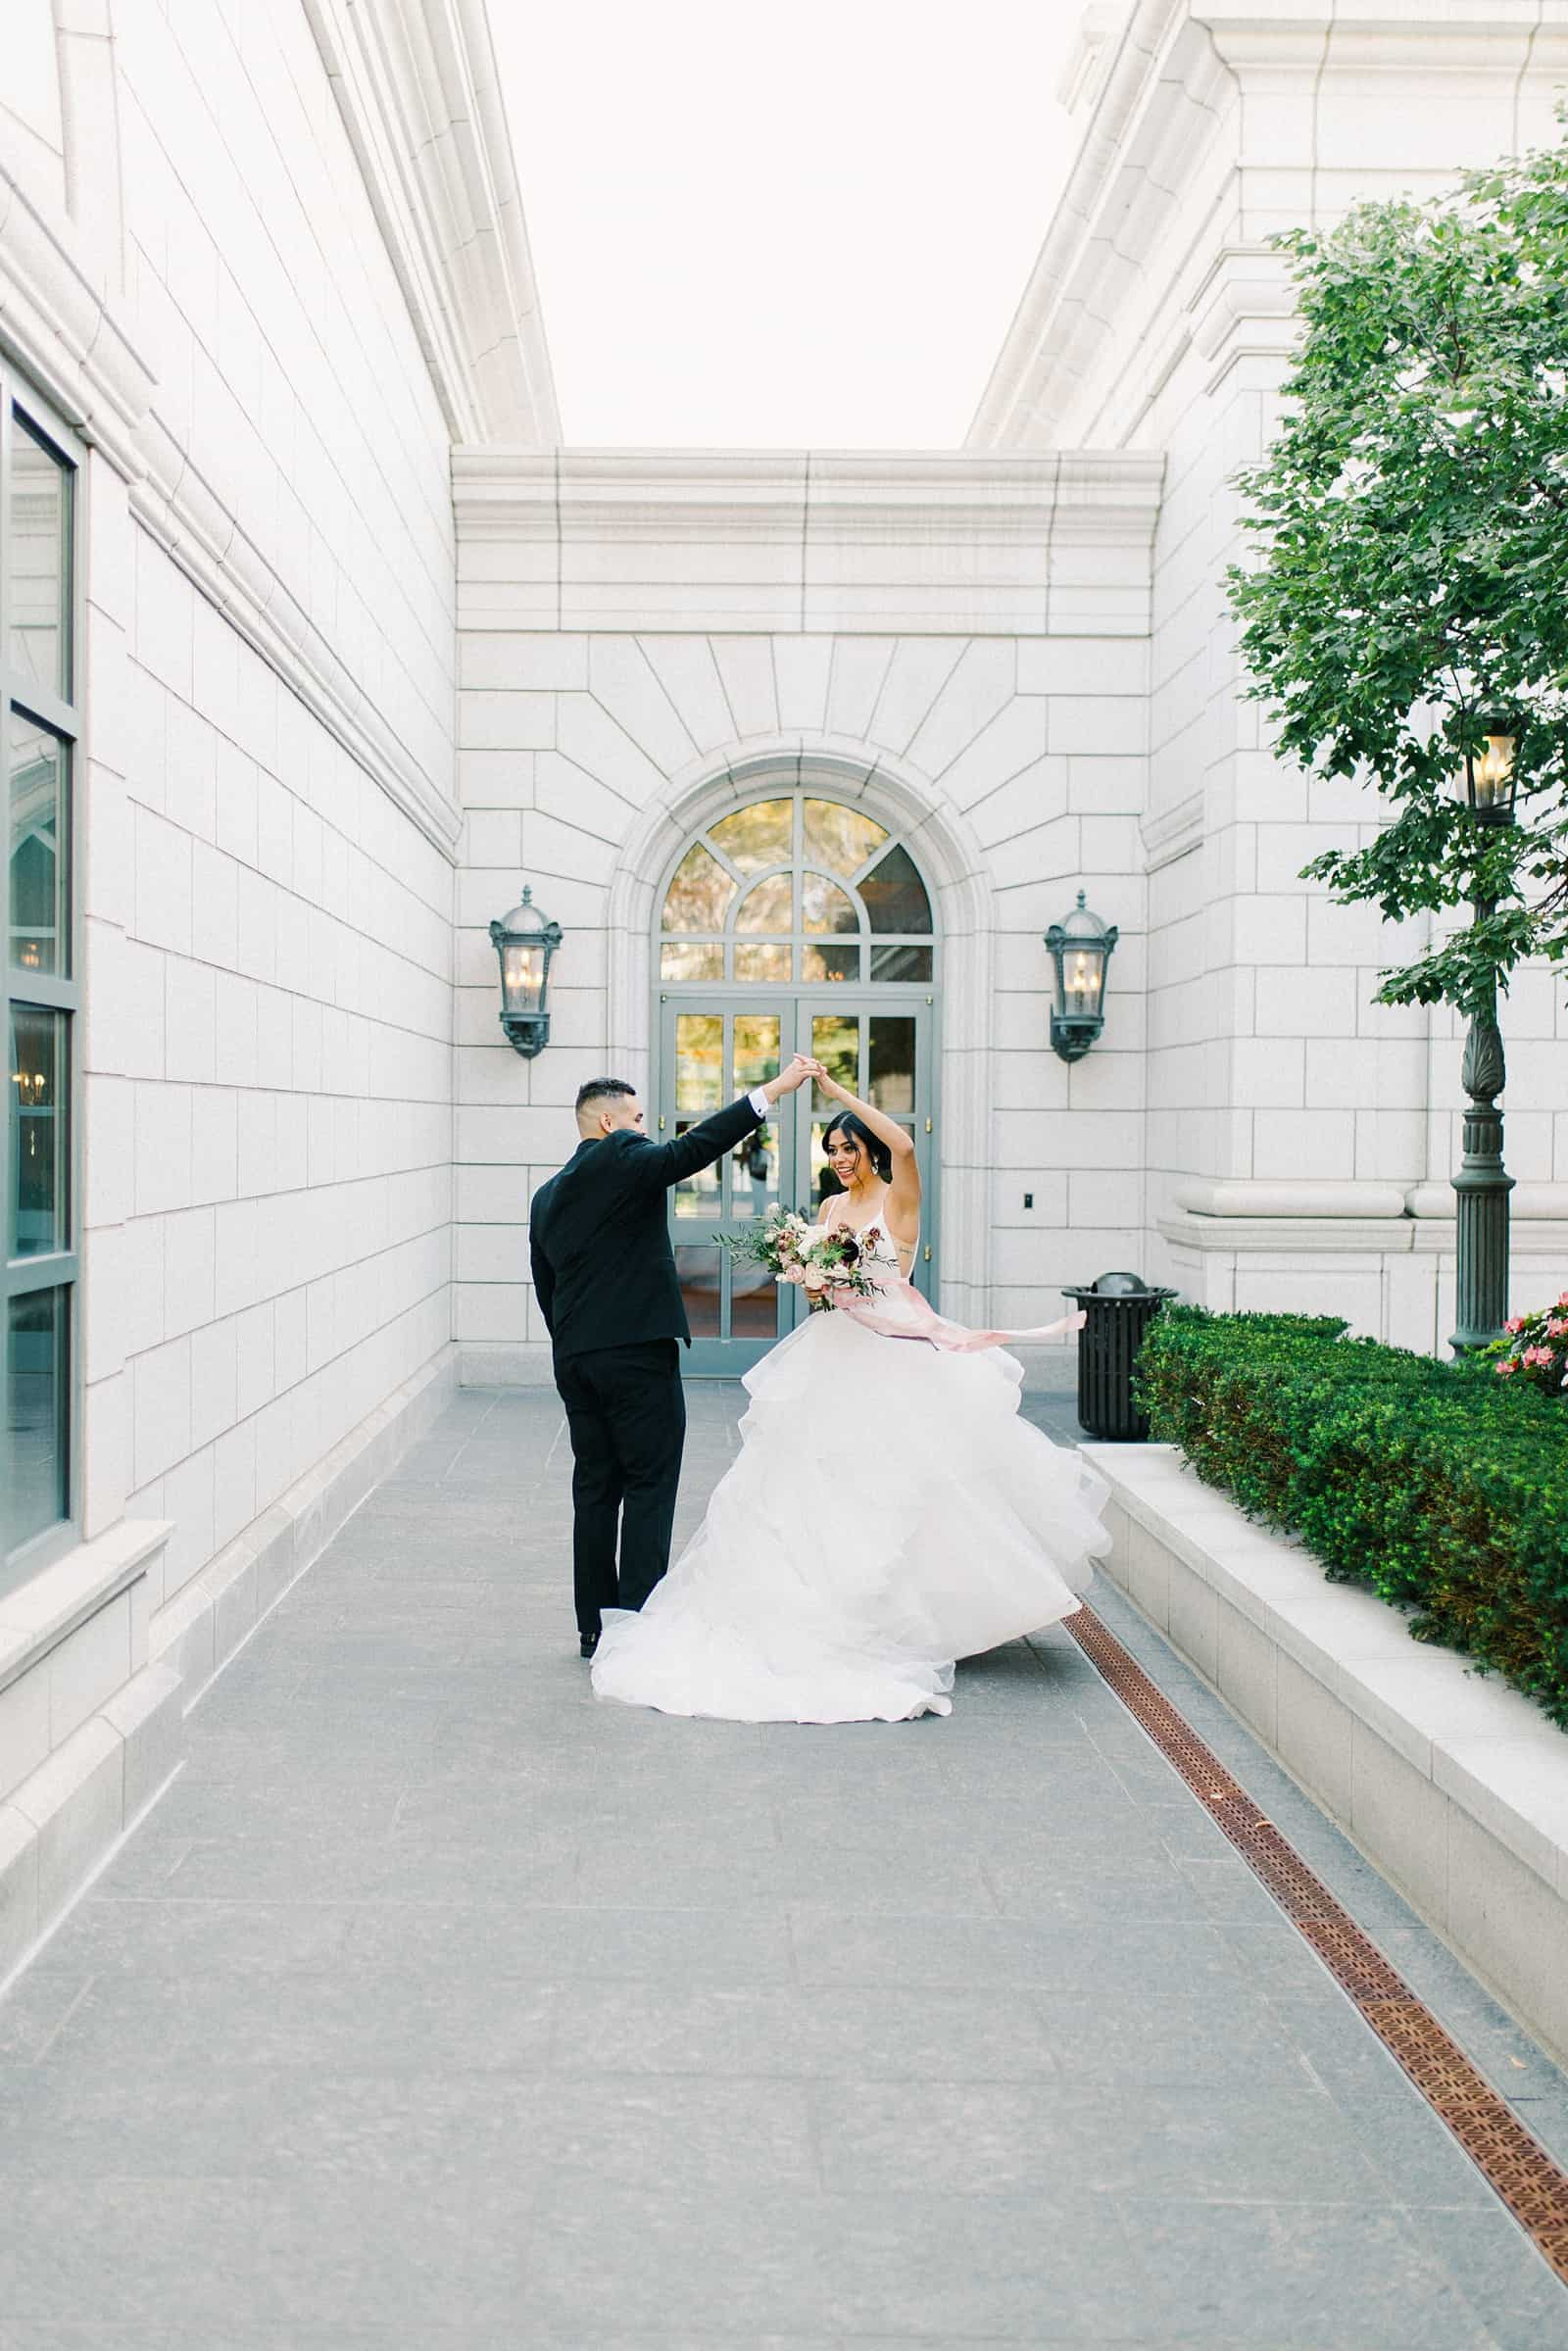 Bride and groom dancing together in the courtyard of the Grand America hotel in Salt Lake City